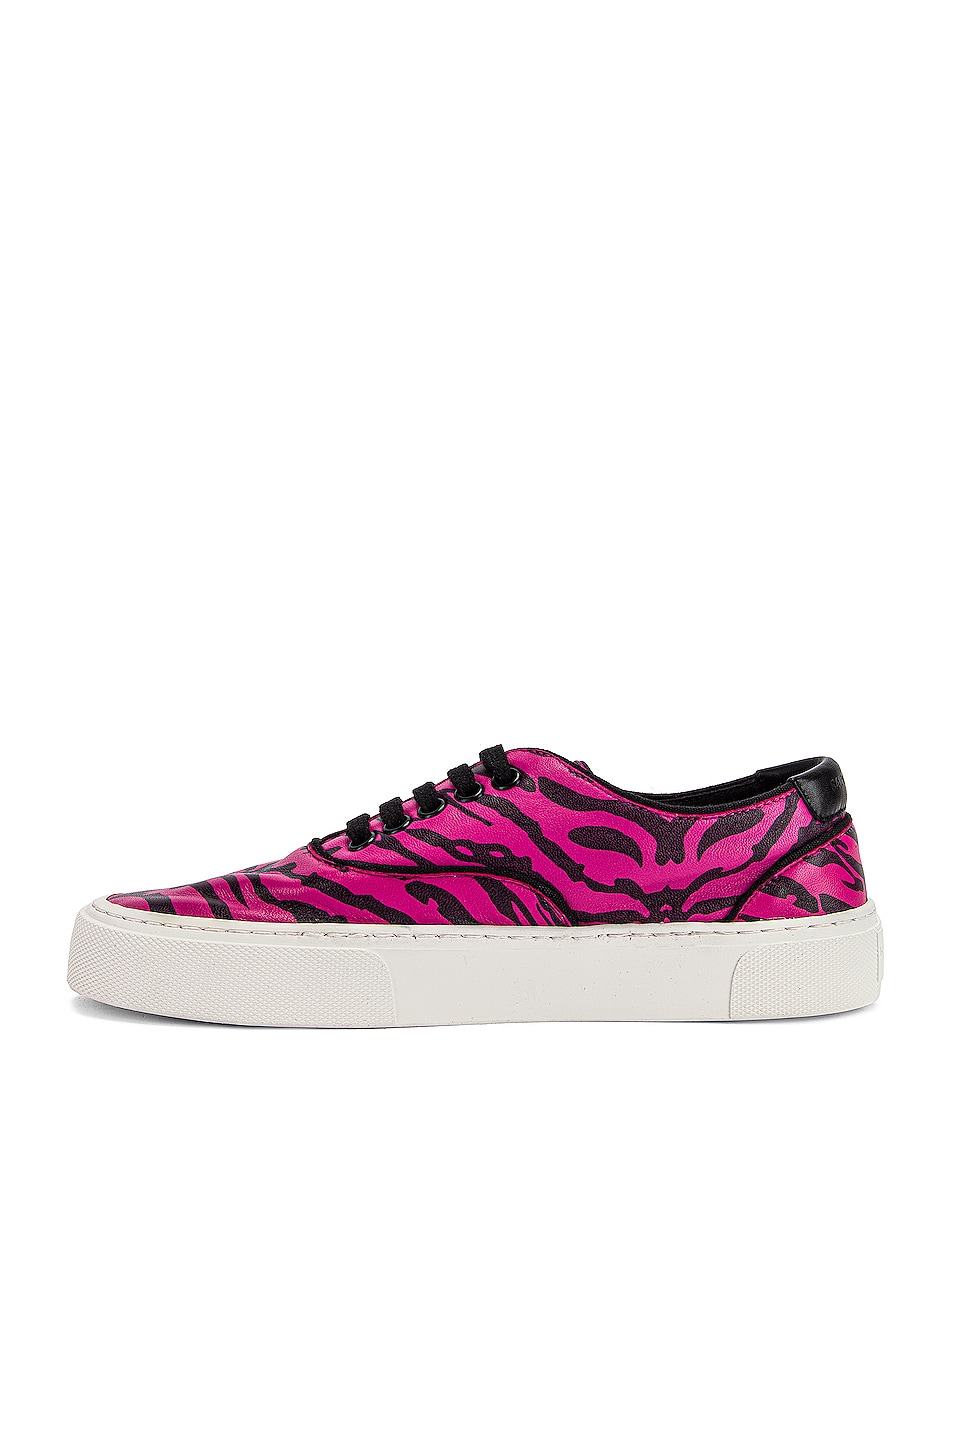 Image 5 of Saint Laurent Low Top Venice Sneakers in Fuchsia & Black